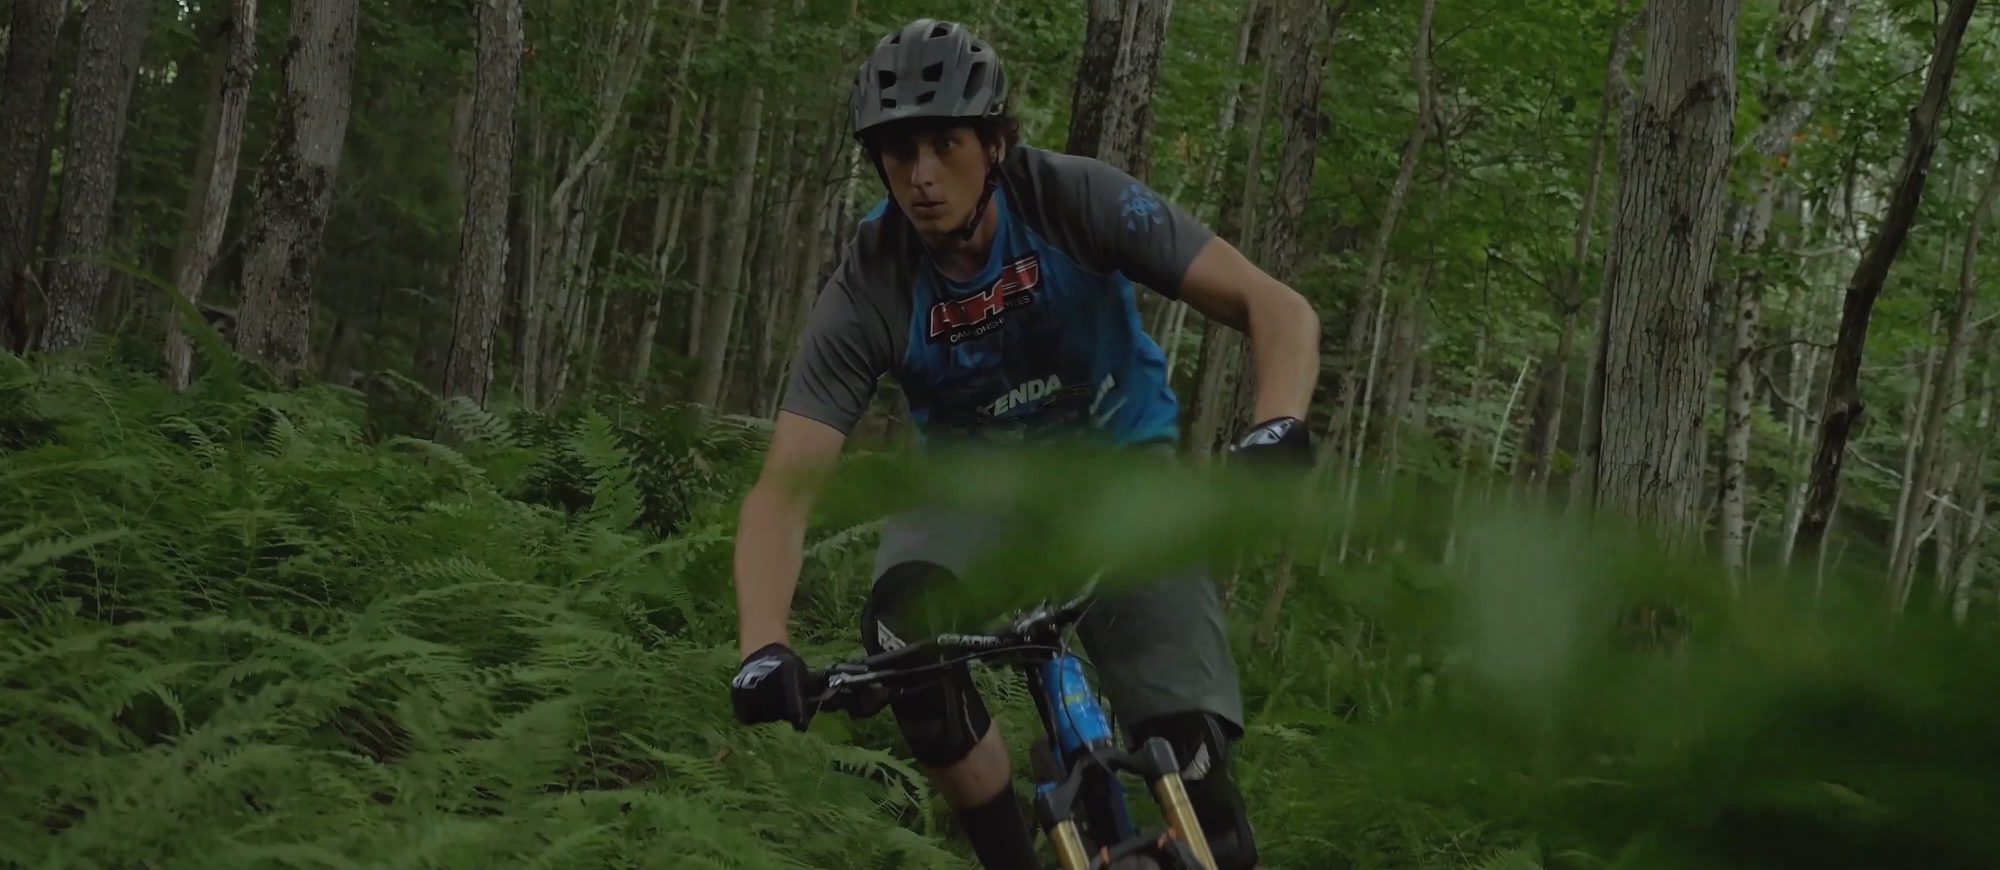 KHS pro mtb rider, Seamus Powell, riding through the woods.